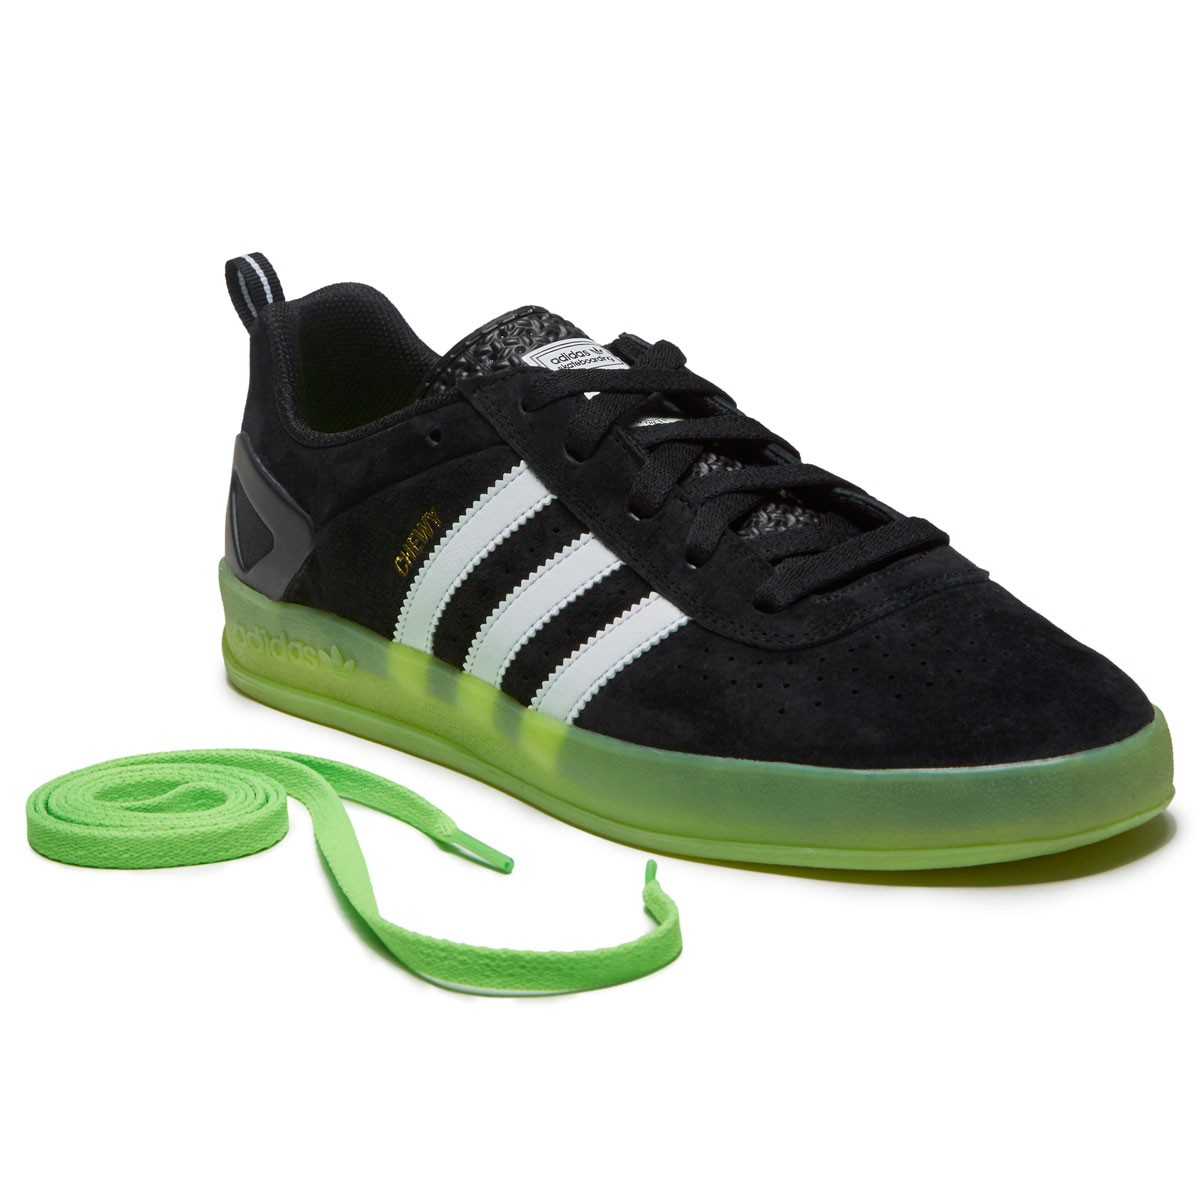 Adidas X Palace Pro Chewy Shoes - Black White Solar Green - 10.0 7b3dd8b5677a